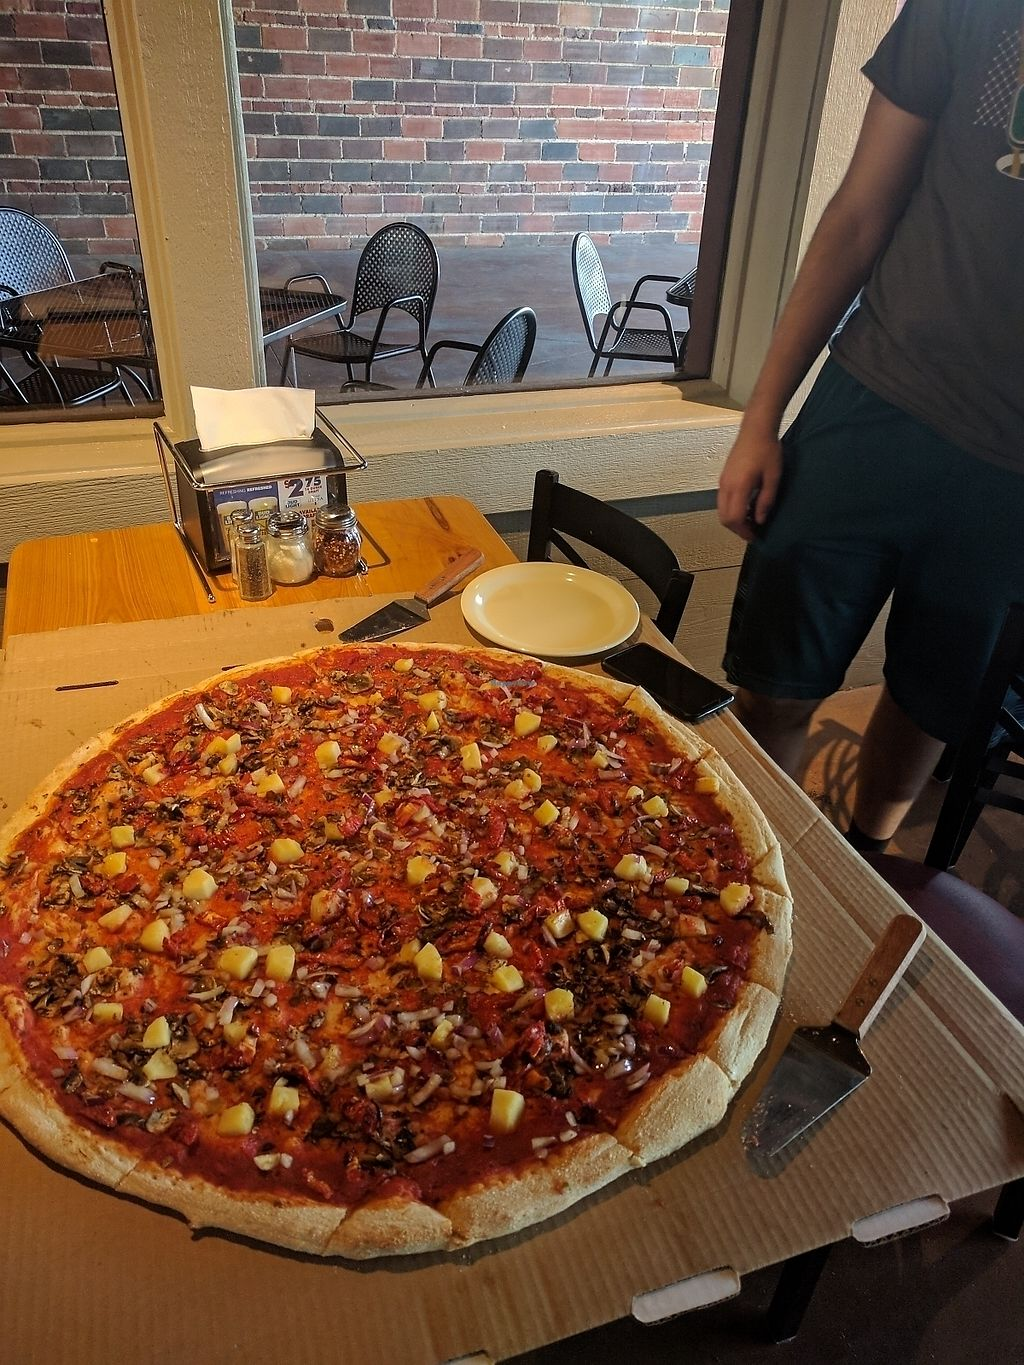 """Photo of Merrell's Pizza  by <a href=""""/members/profile/Anirak"""">Anirak</a> <br/>28"""" veggie pizza <br/> August 21, 2017  - <a href='/contact/abuse/image/98957/295125'>Report</a>"""